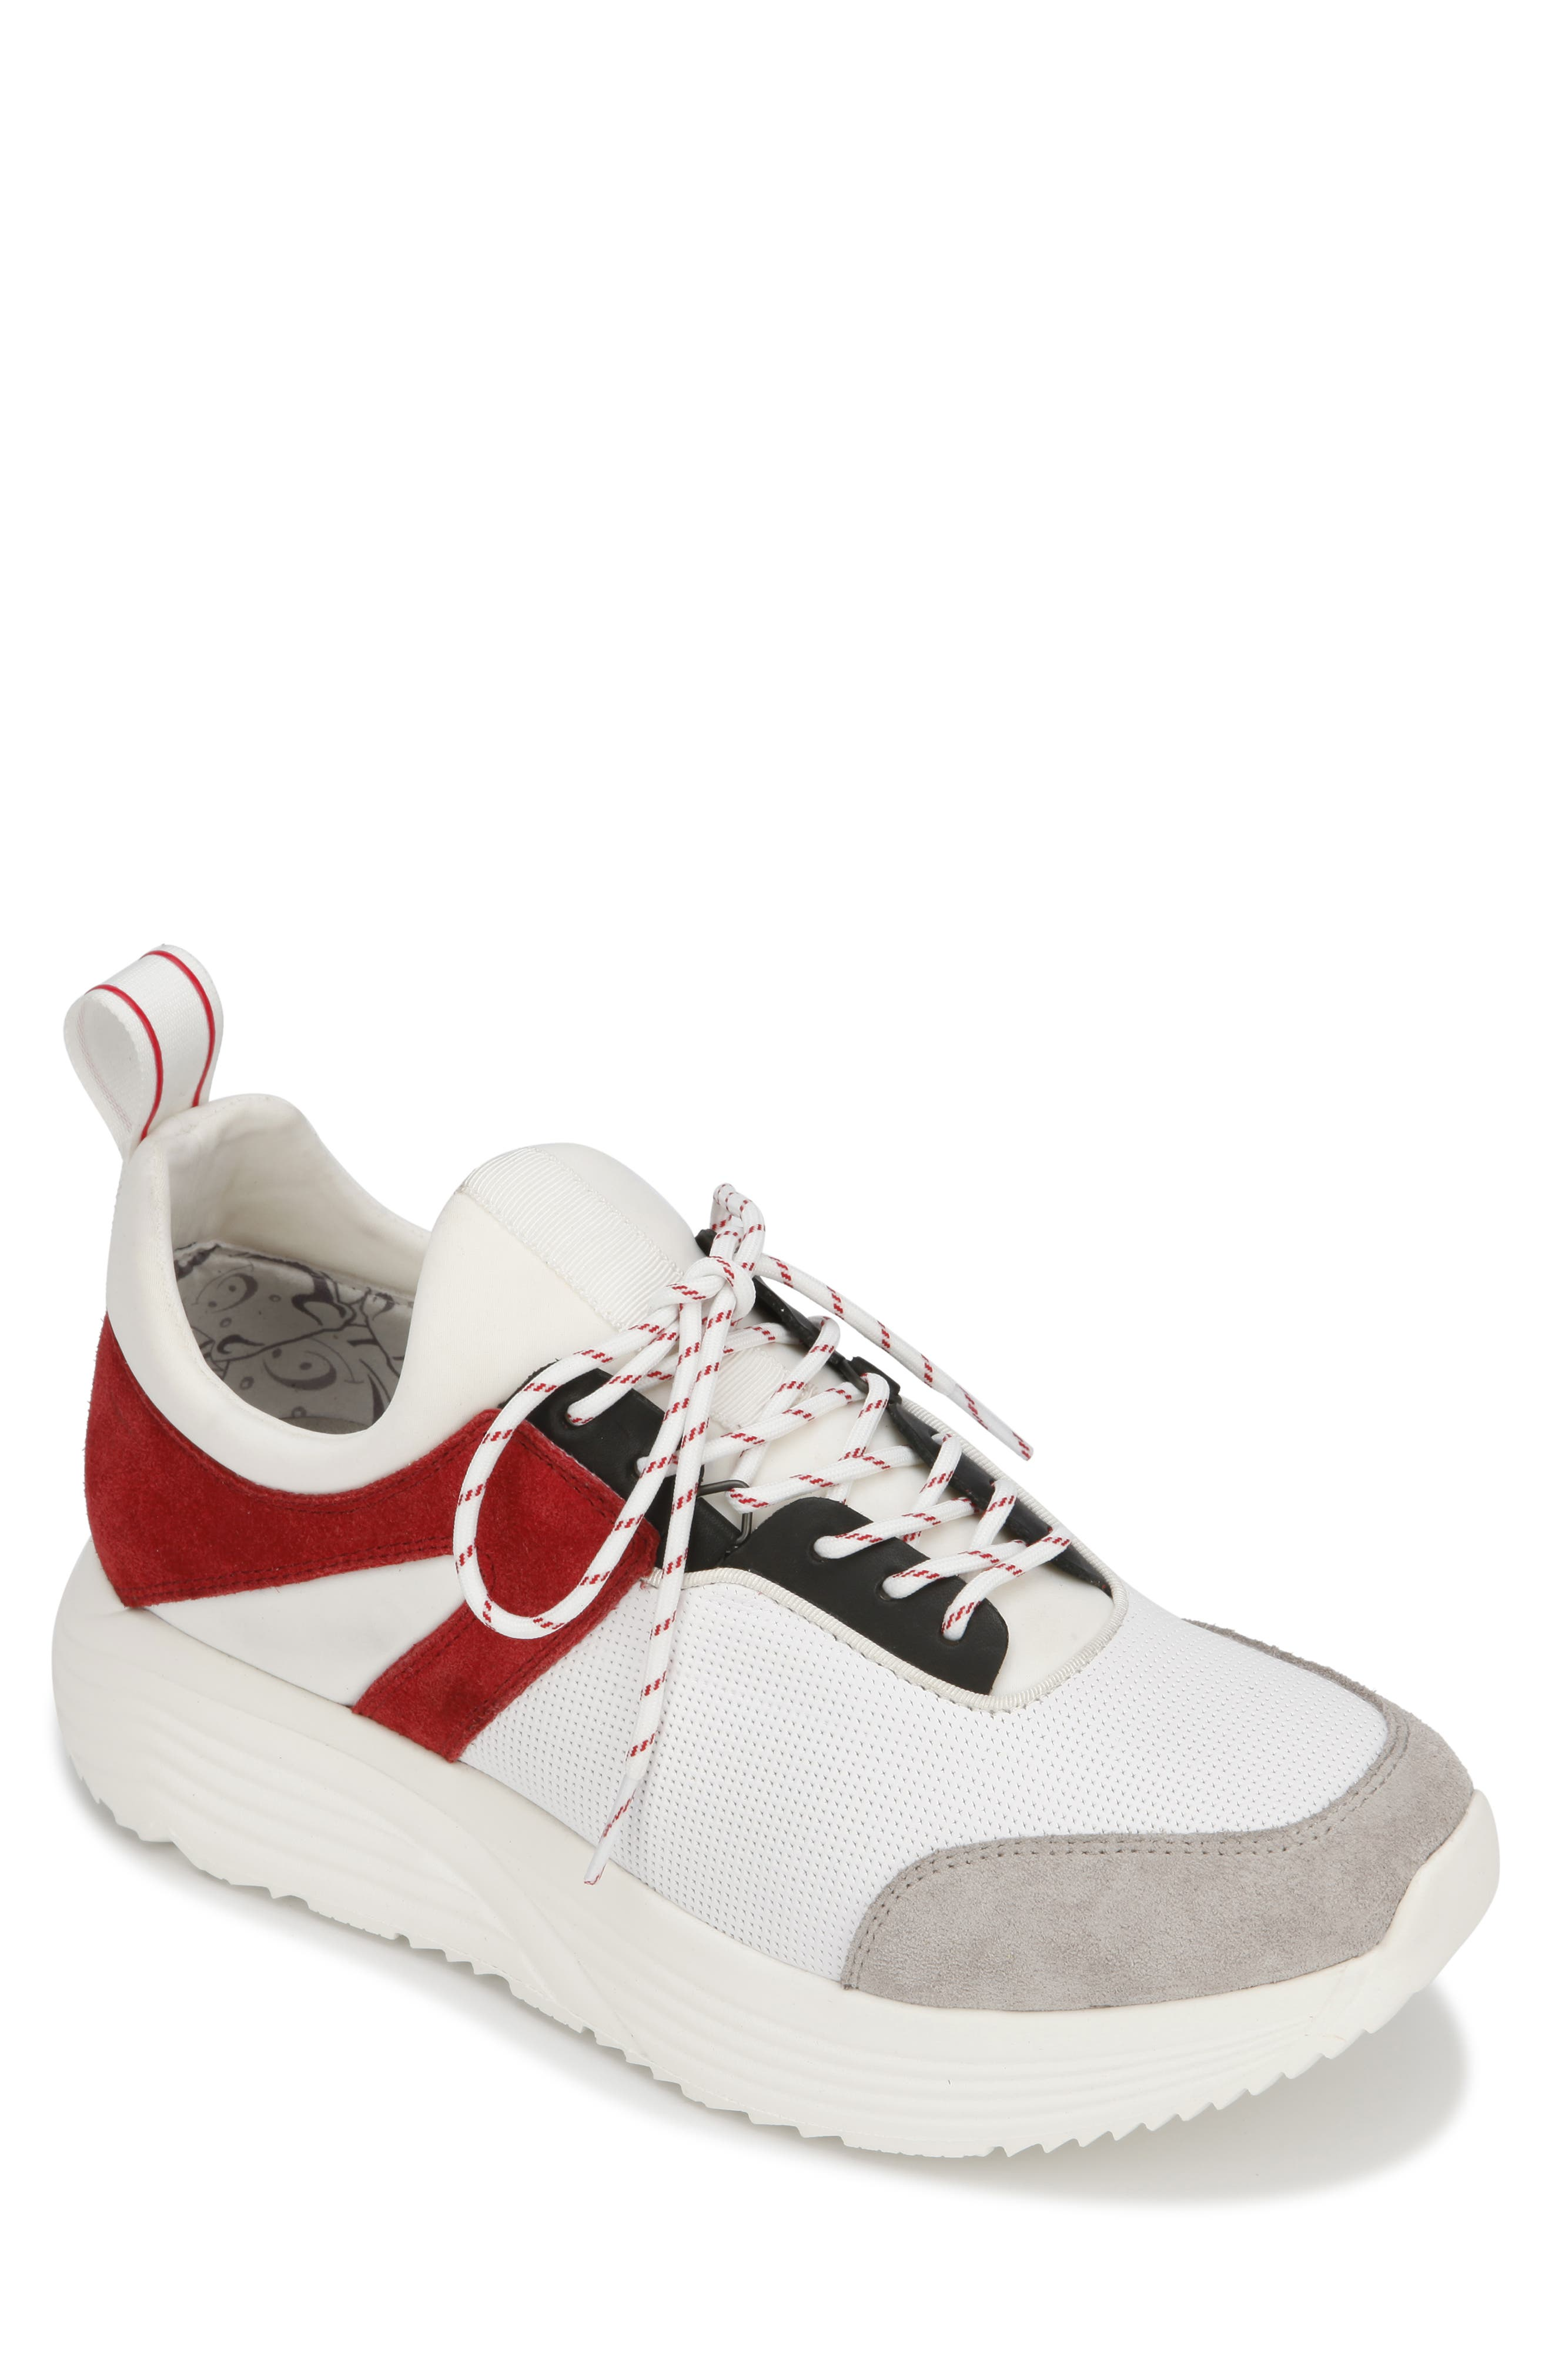 KENNETH COLE NEW YORK, Un-Dad Sneaker, Main thumbnail 1, color, WHITE/ RED LEATHER